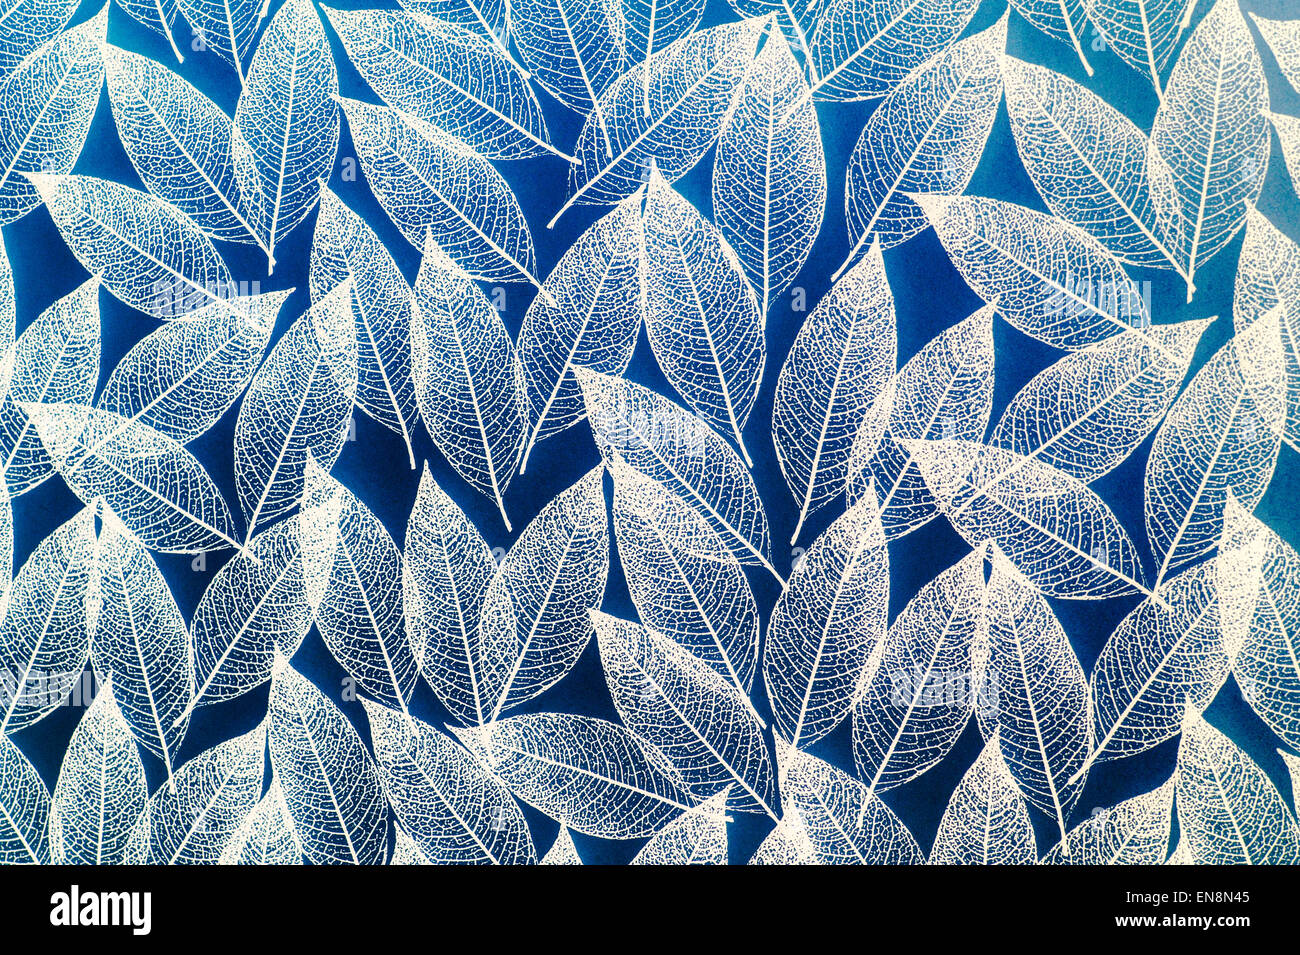 Pattern of leaves on a frosted bathroom window mylar film cover screen. Pattern Of Leaves On A Frosted Bathroom Window Mylar Film Cover